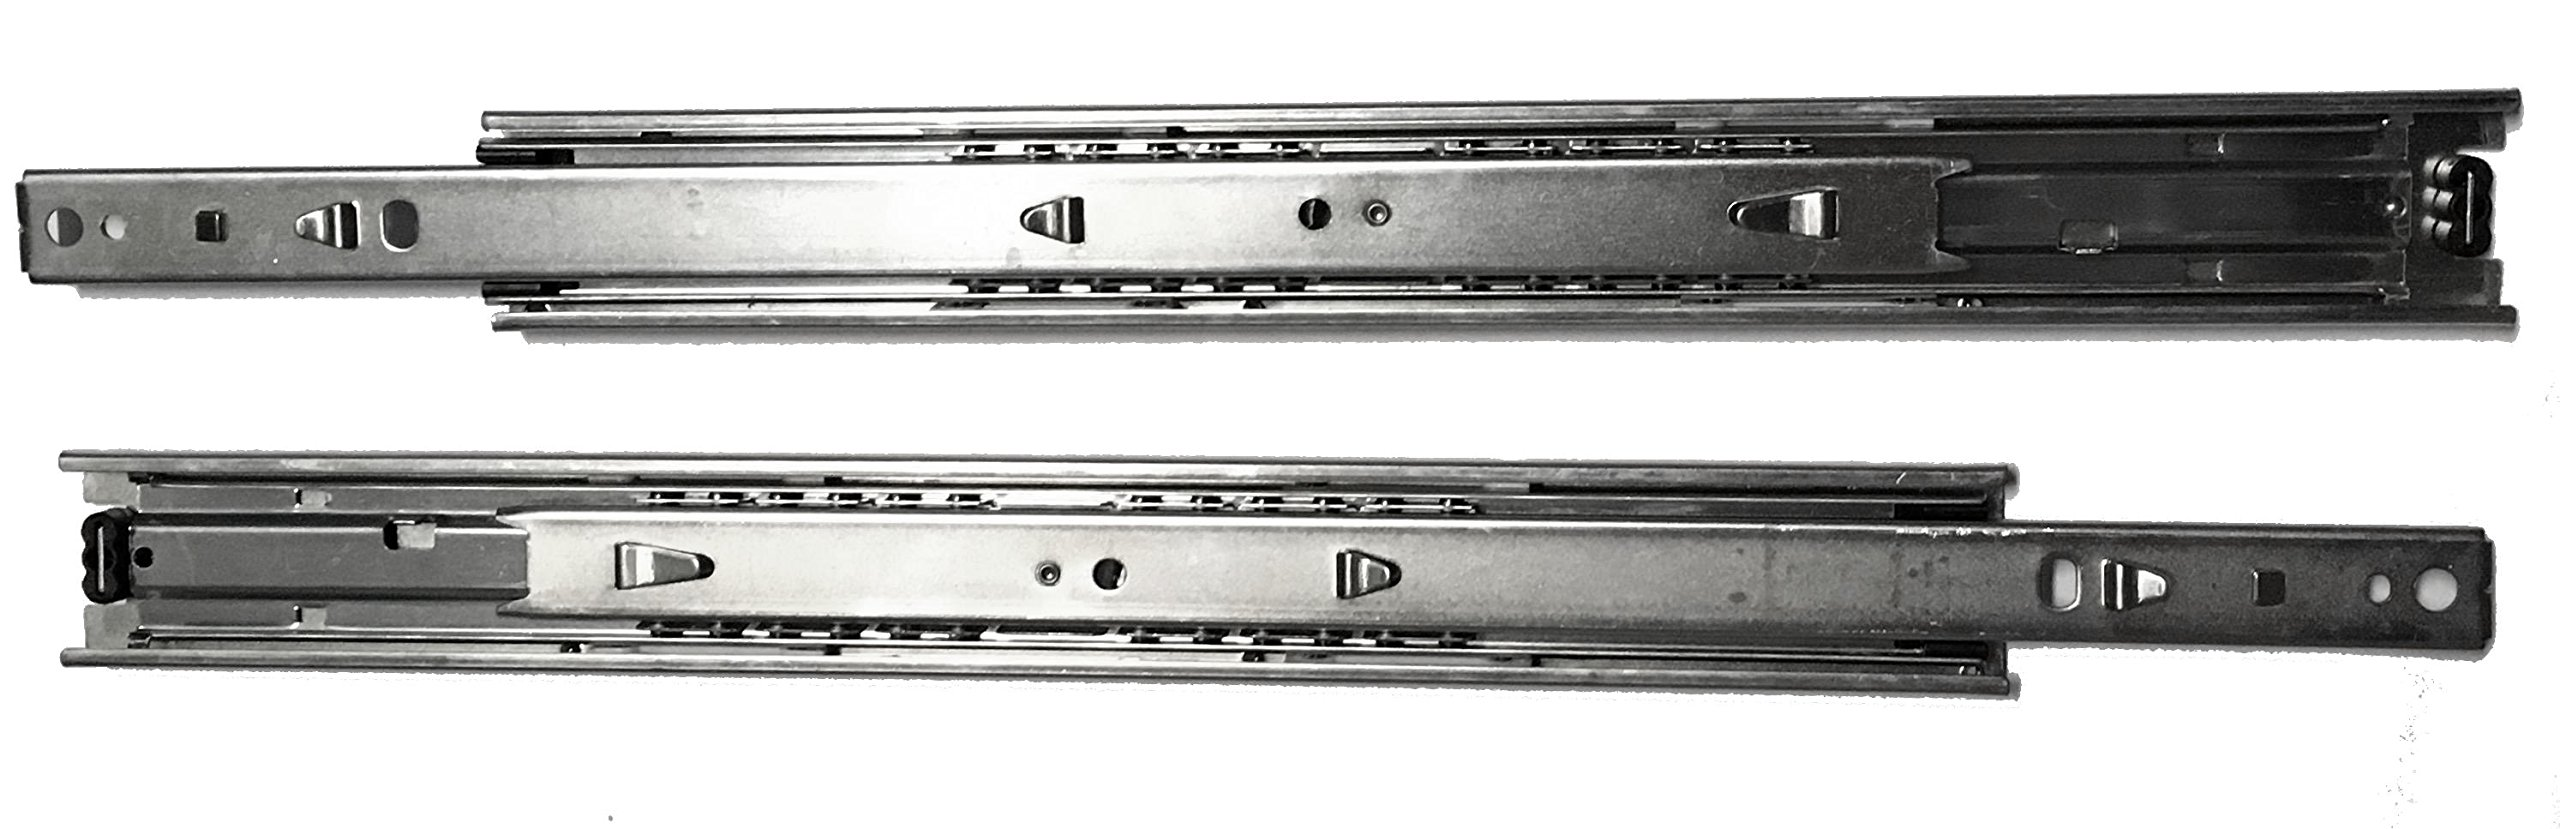 Proto Ball Bearing Drawer Slides, Pair (Left & Right) by Proto (Image #1)